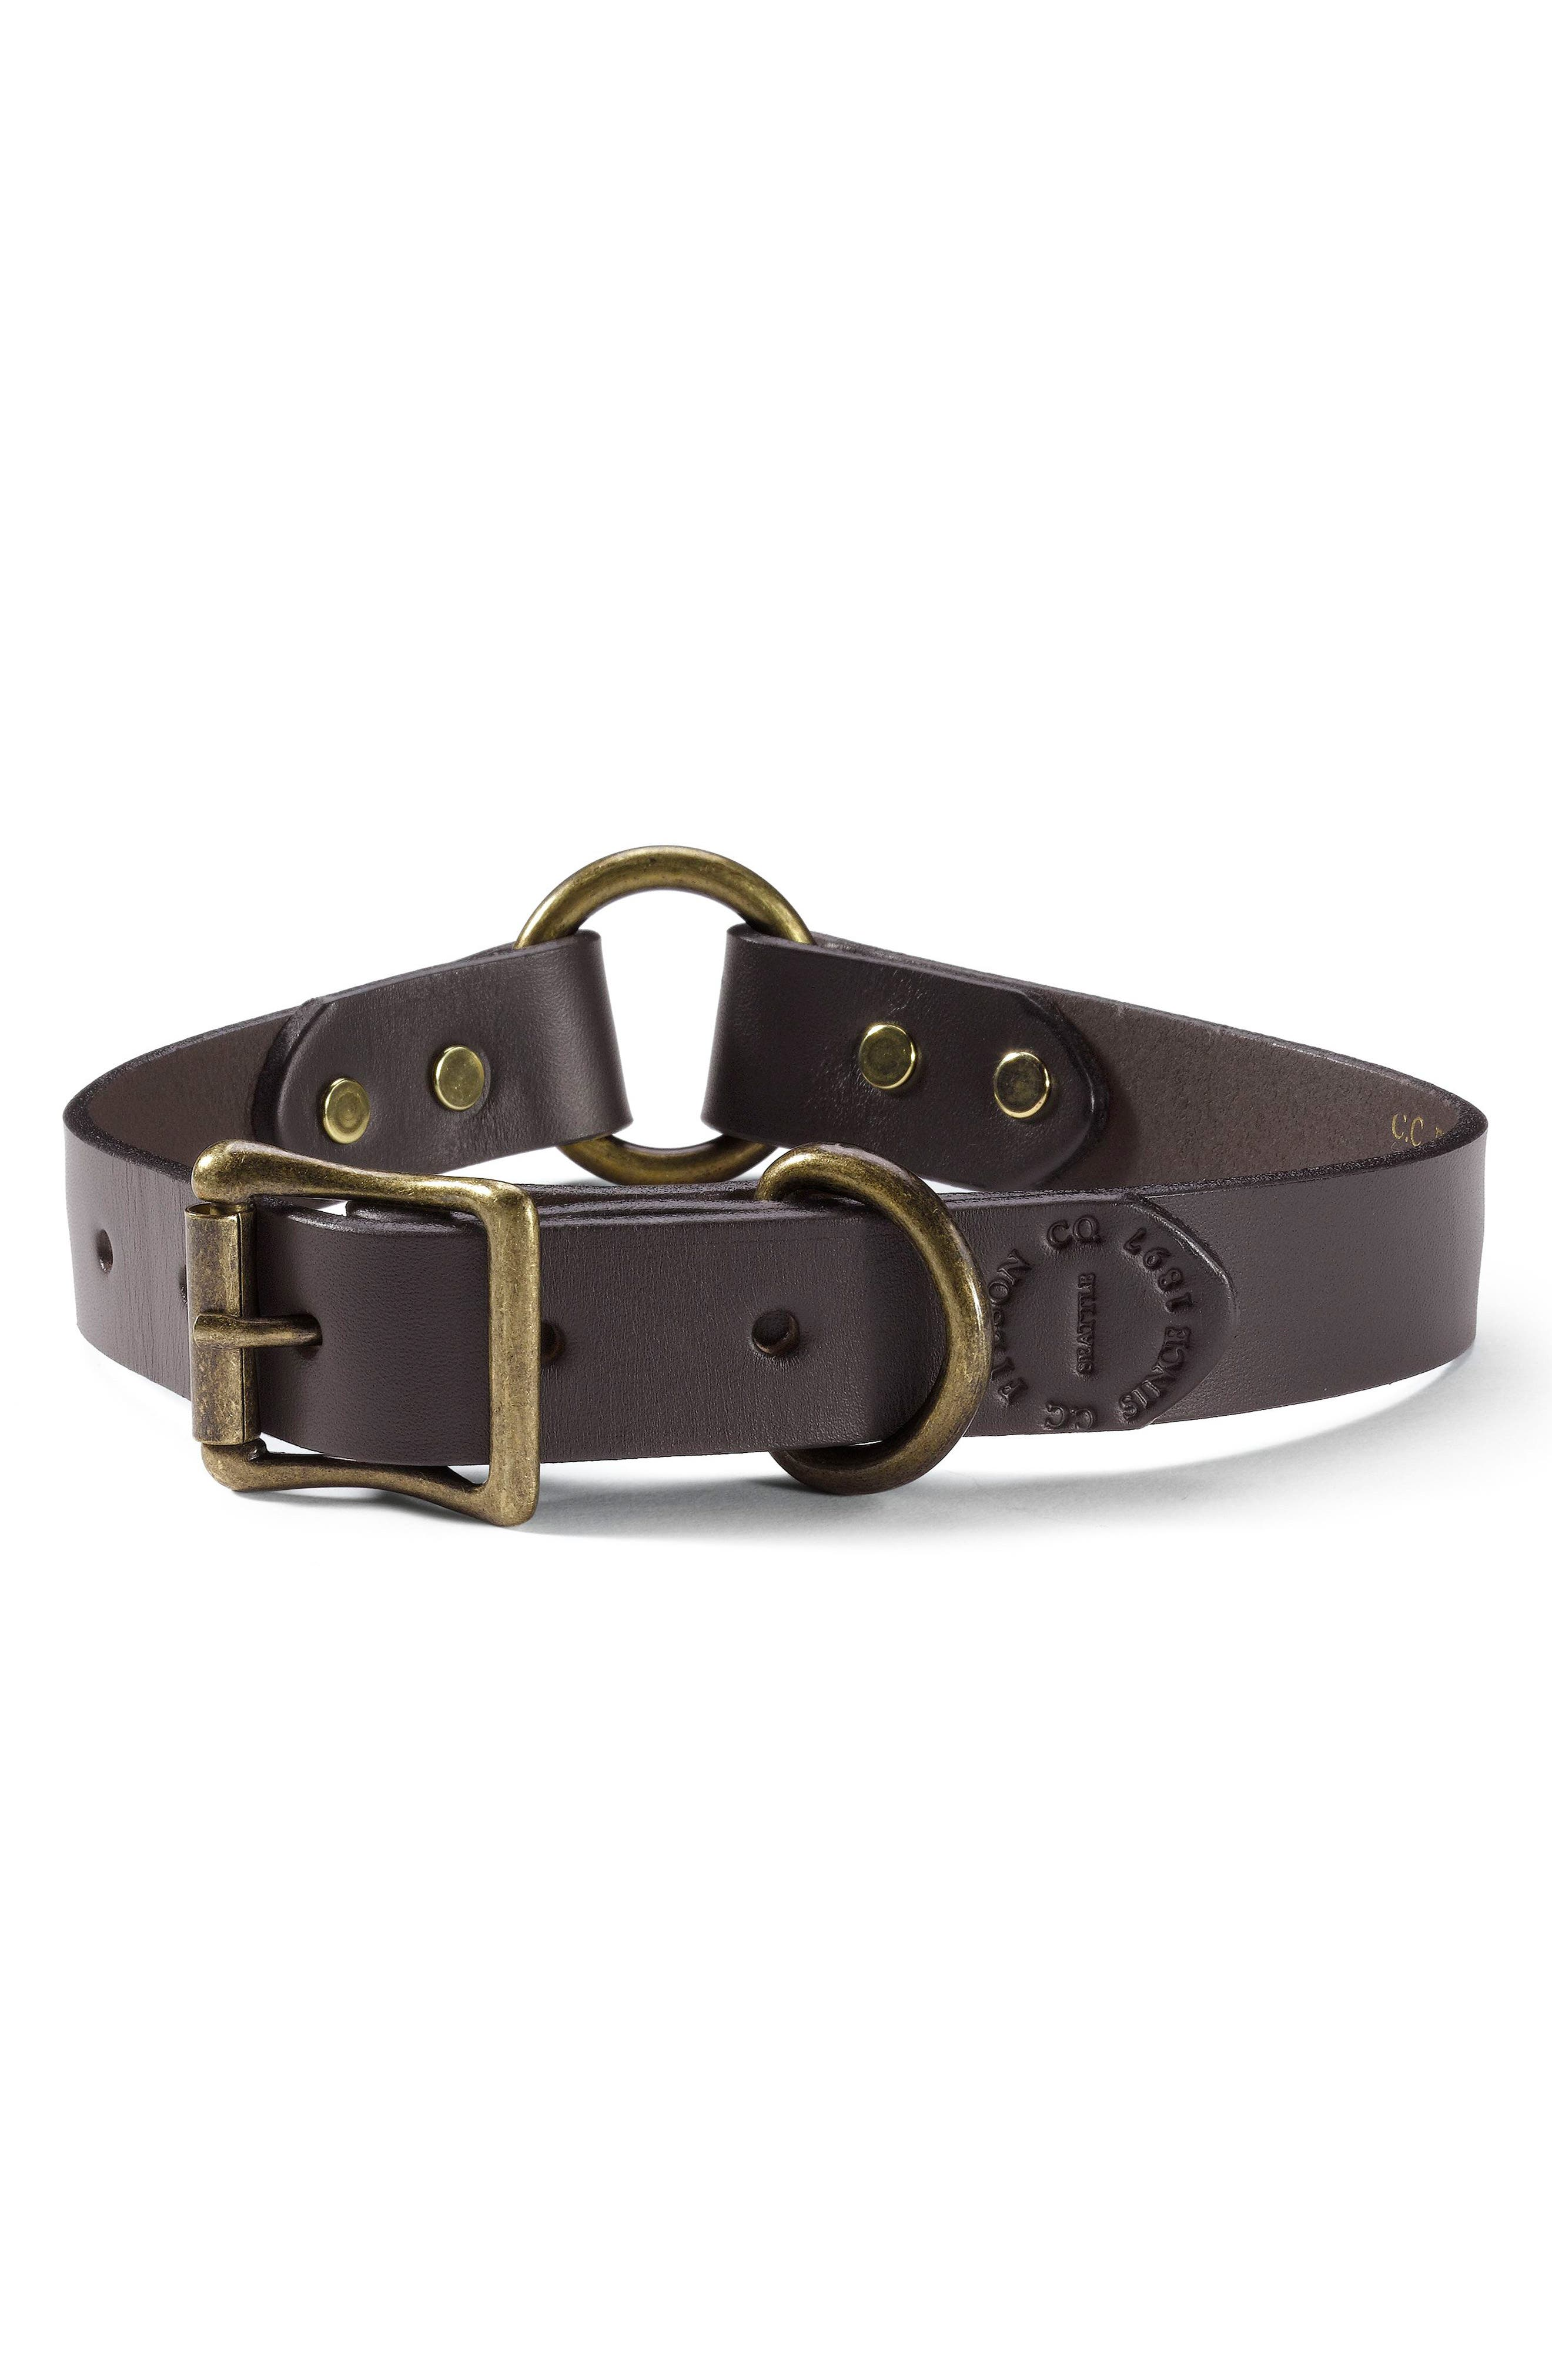 Leather Dog Collar,                         Main,                         color, Brown